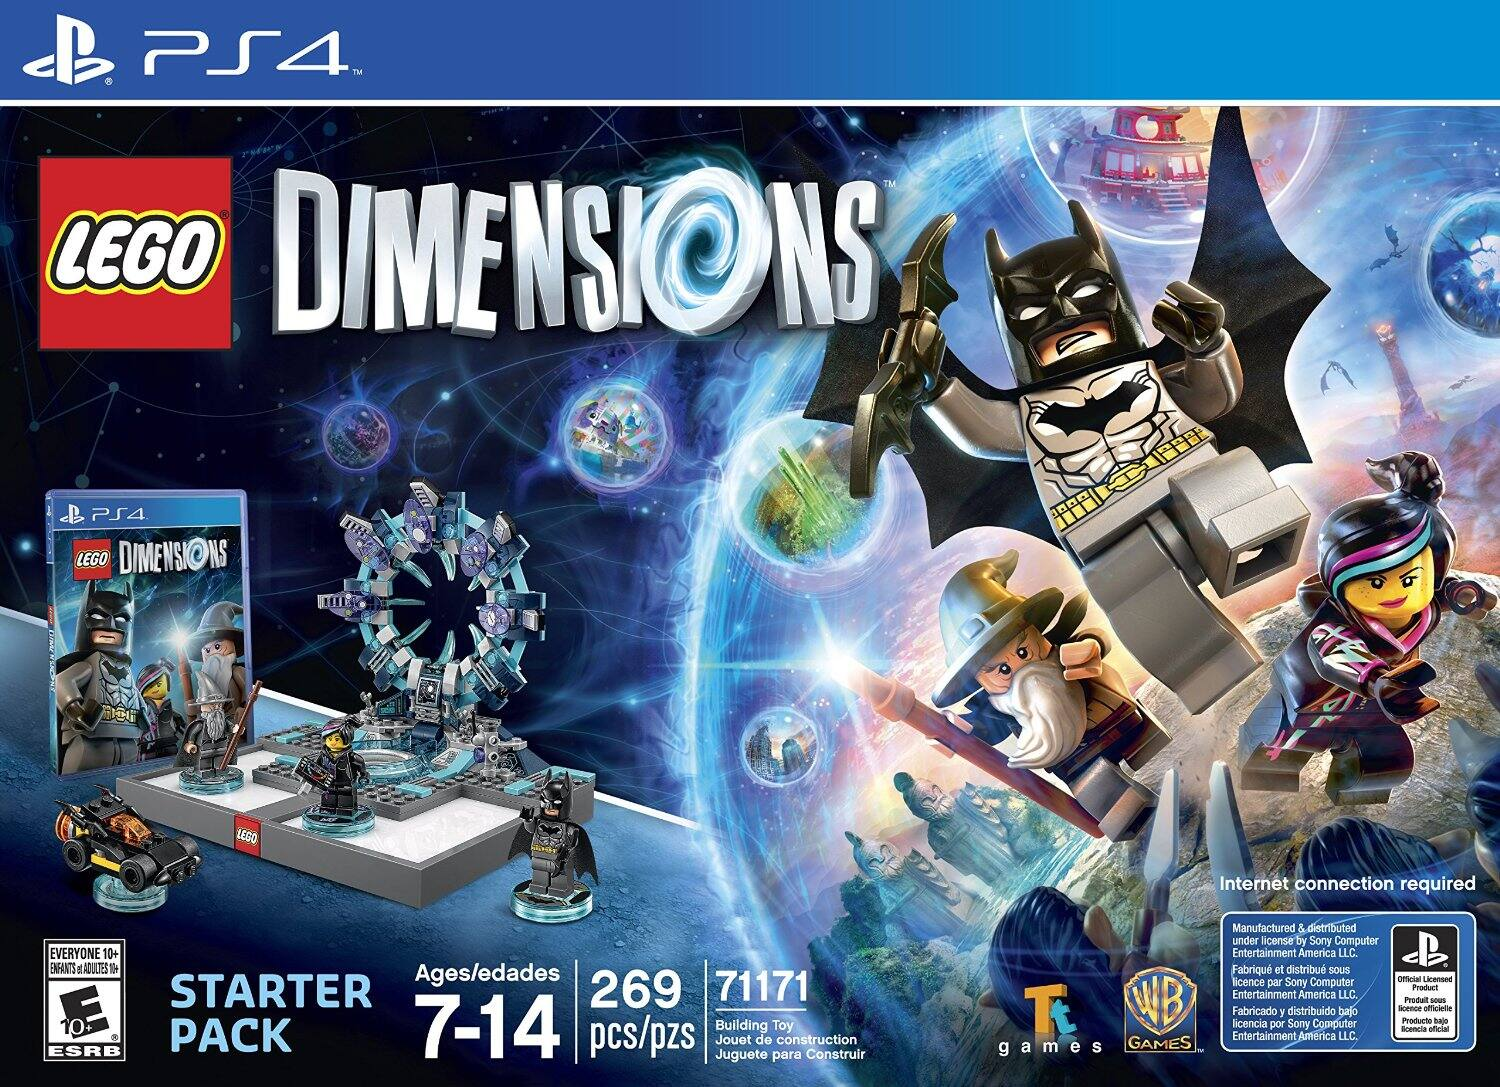 LEGO Dimensions Starter Pack (PS4, Xbox One, or Wii U) $39.99 w/ GCU + Free Shipping